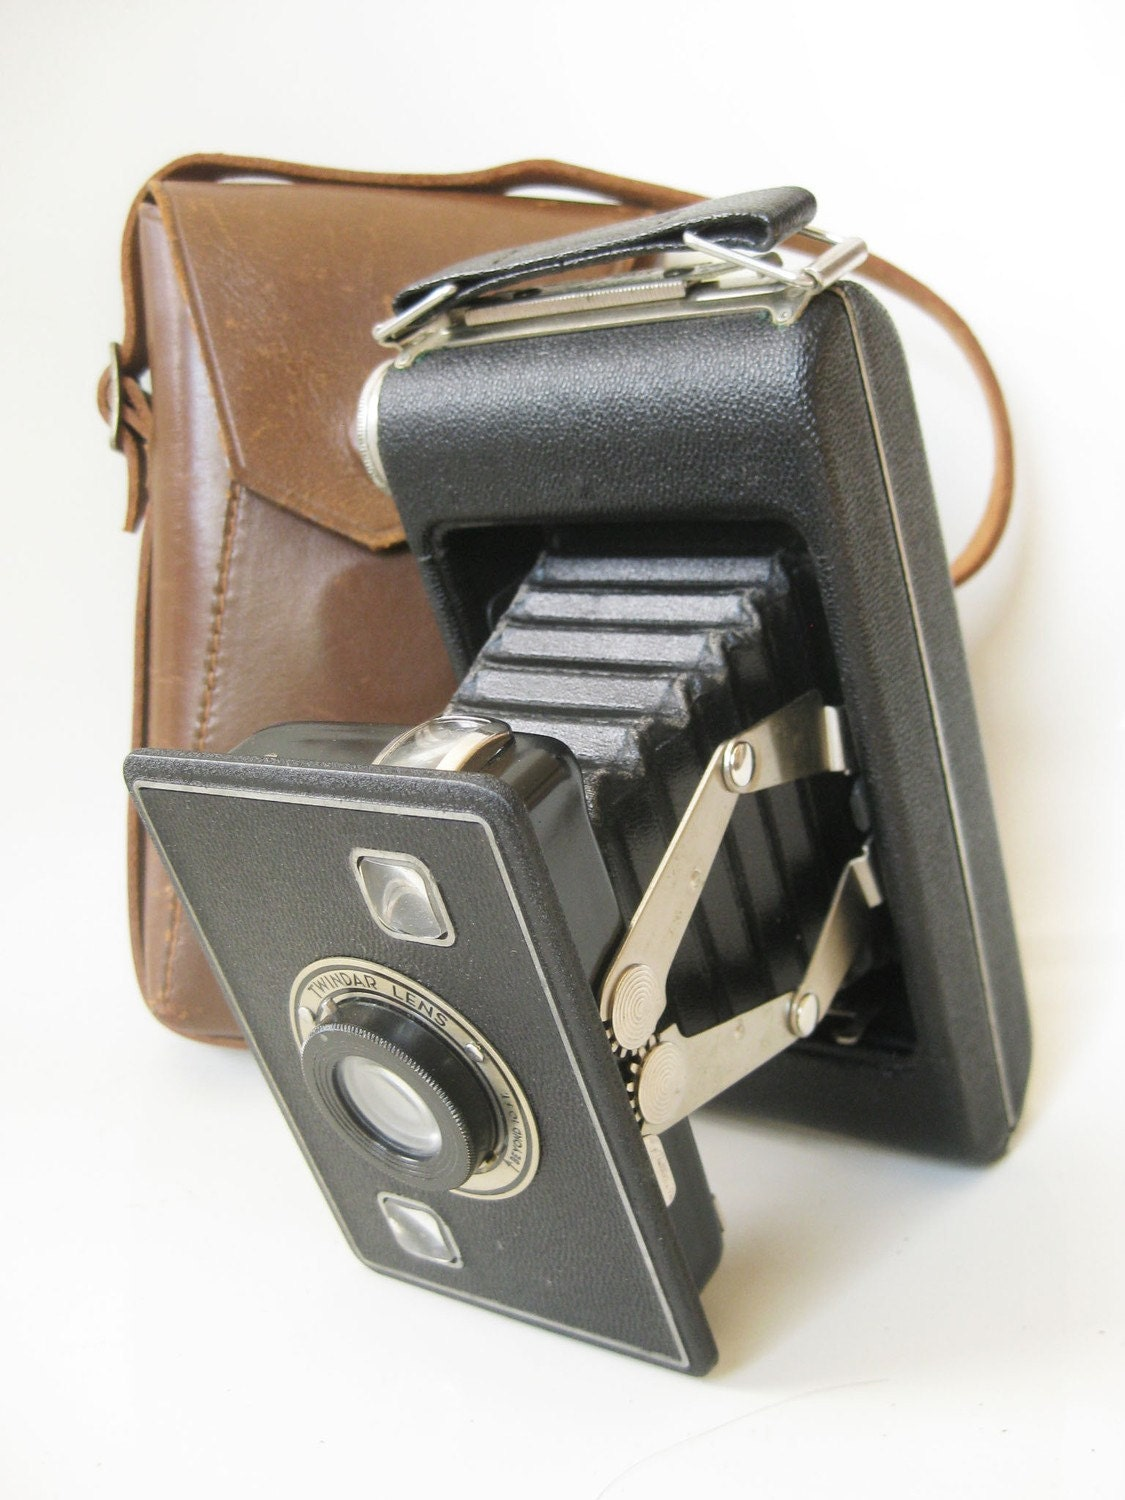 Vintage KODAK CAMERA 1950s Mad Men Indie 1940s Twindar Bellows Classic Leather Case